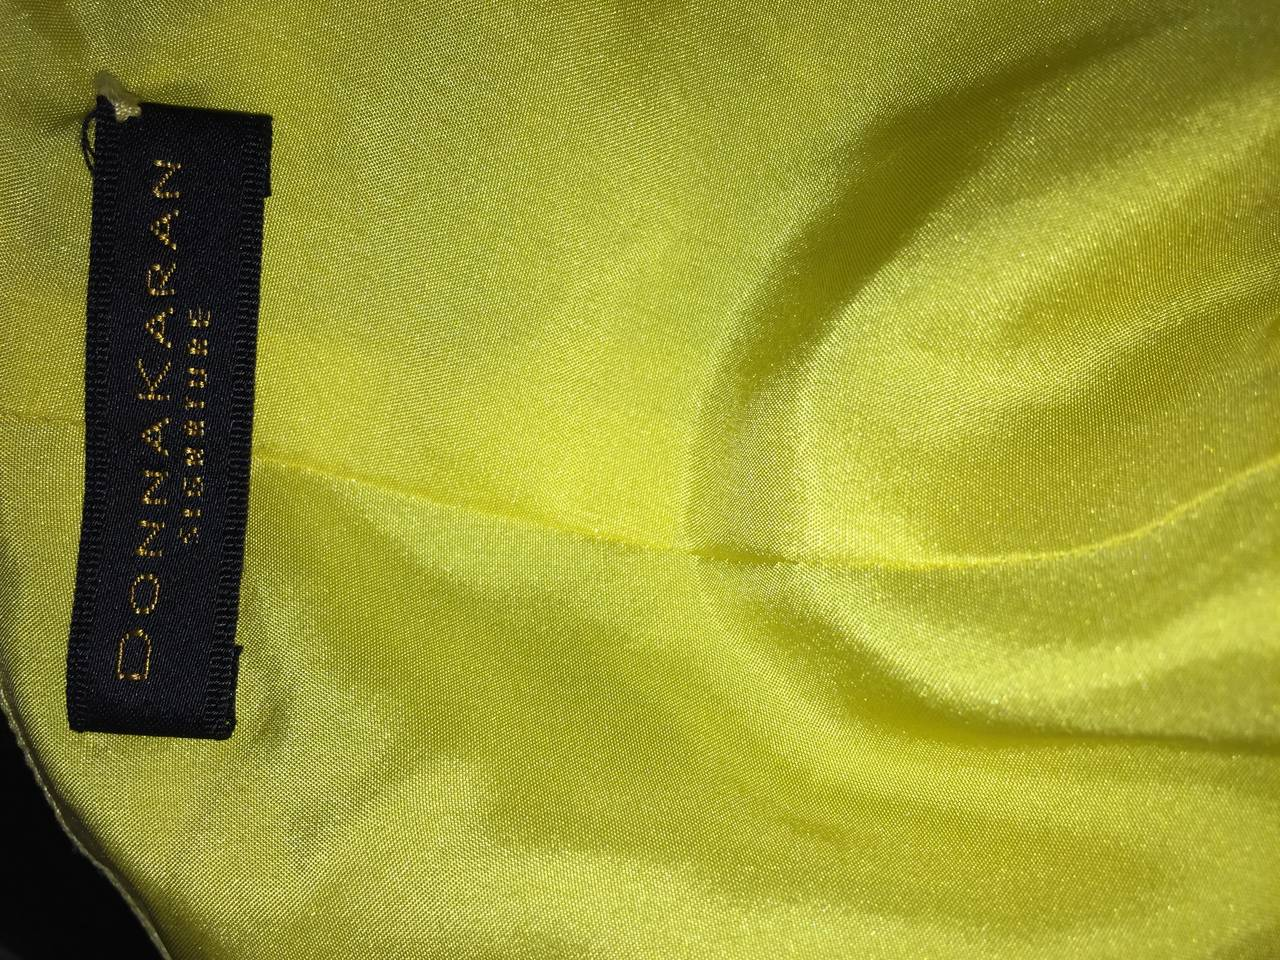 Beautiful 1990s Vintage Donna Karan Canary Yellow Beaded Sequin Silk Dress For Sale 1